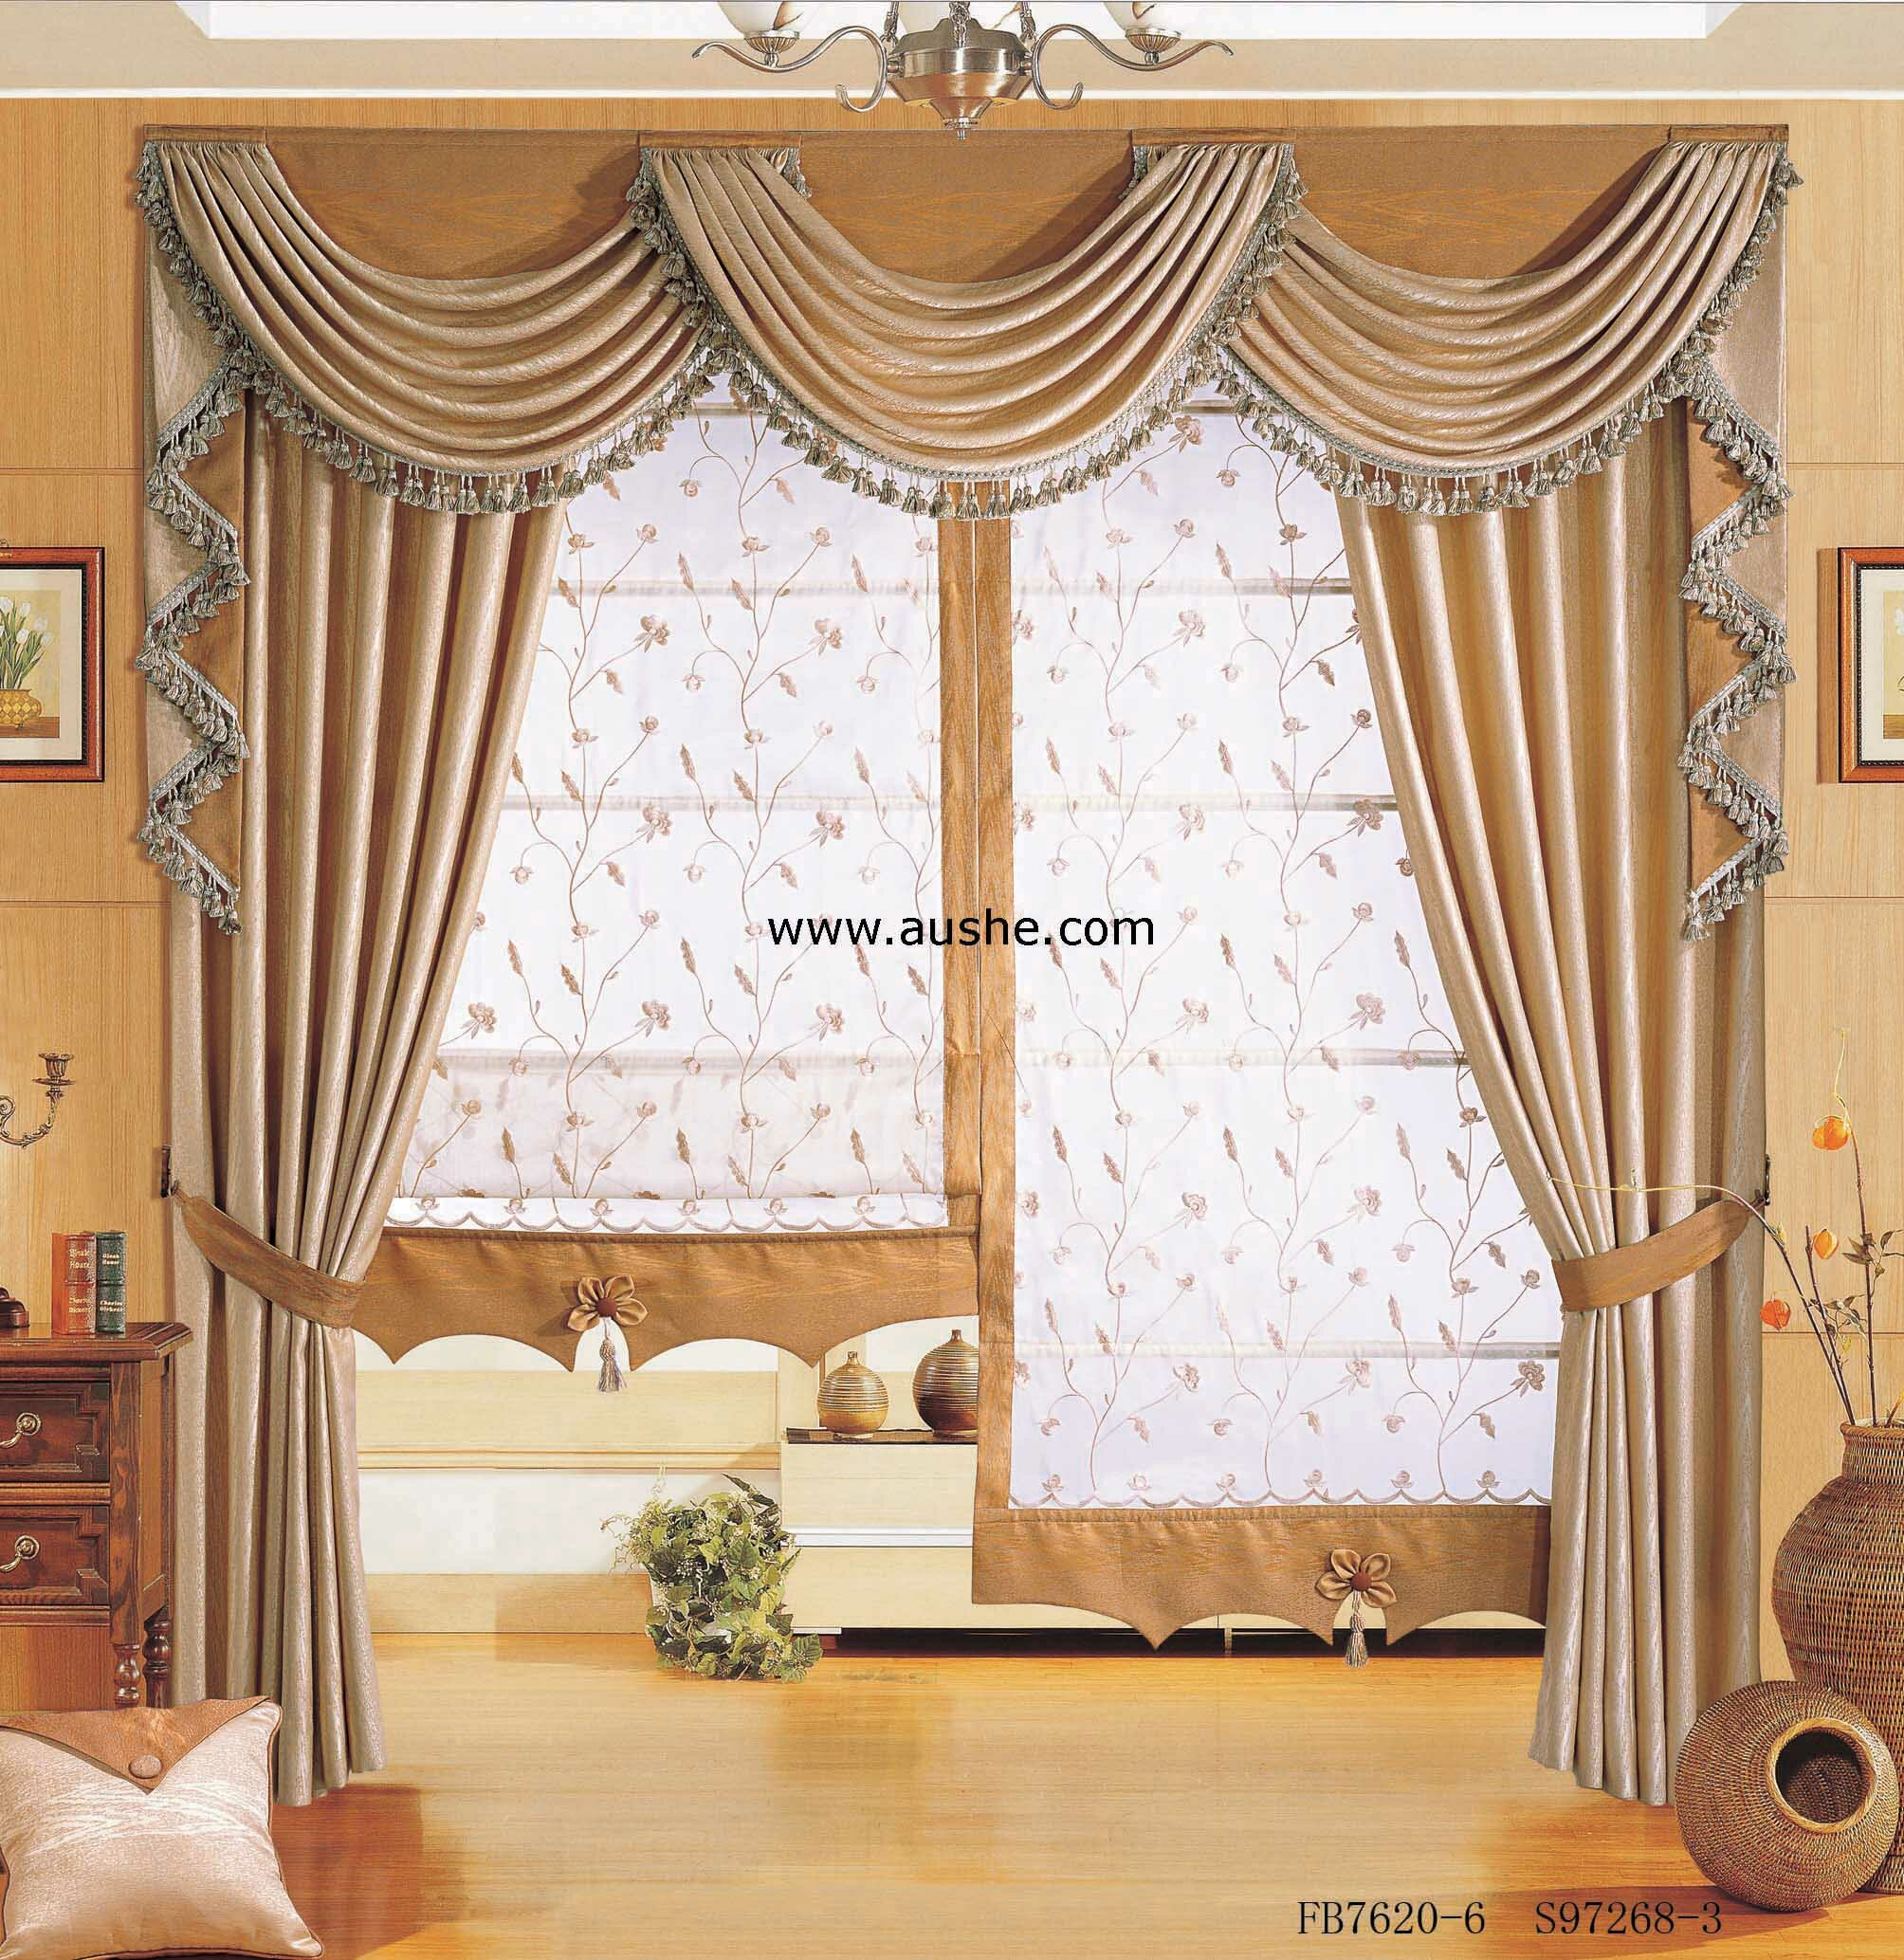 Cute Living Room Valances for Your Home Decorating Ideas: Window Treatments With Valances | Living Room Valances | Valance For Windows Curtains